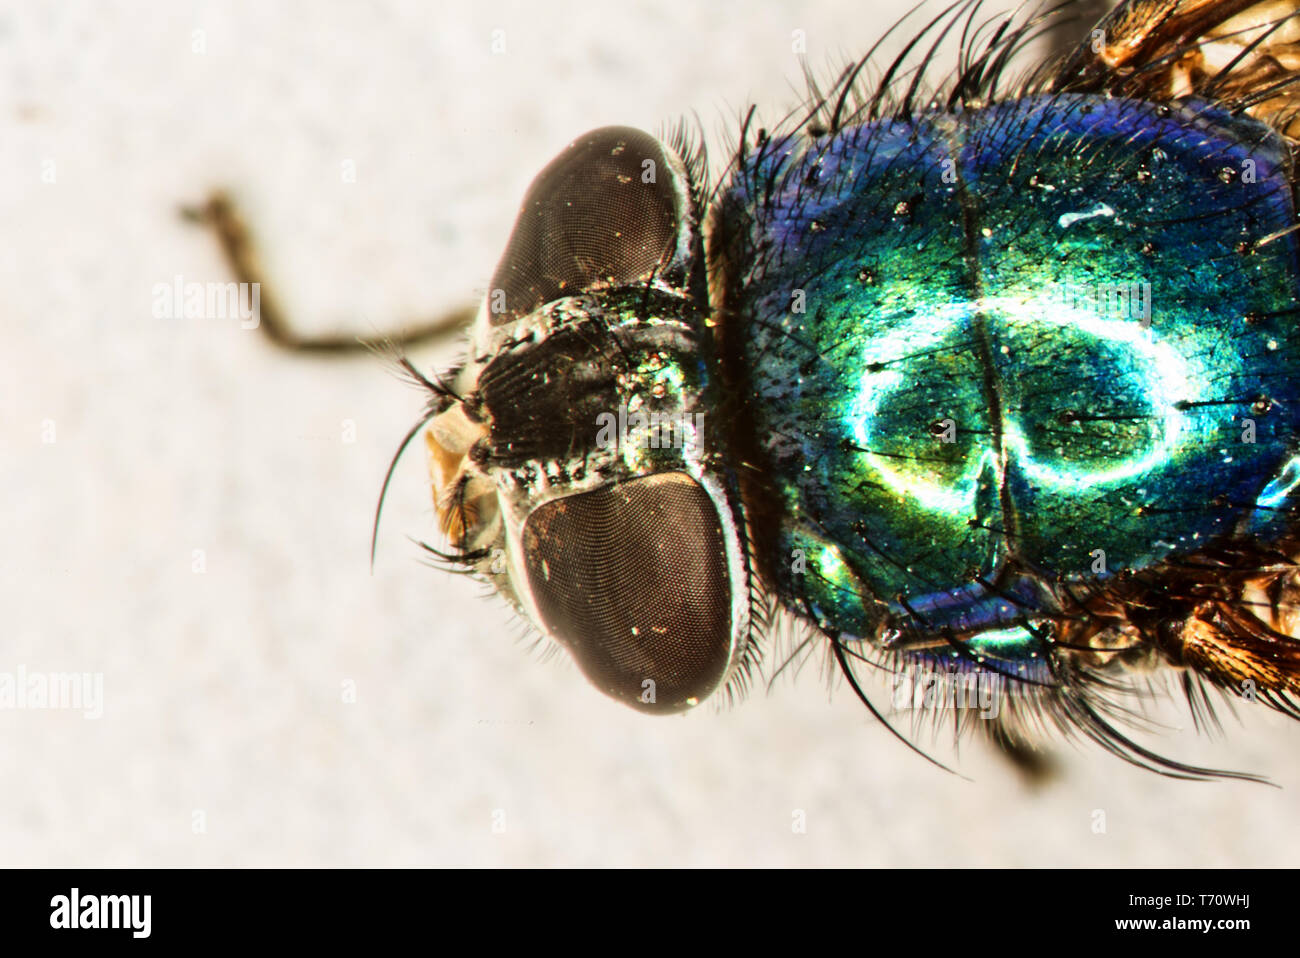 Gold fly with compound eyes and bristles under the magnifying glass - Stock Image